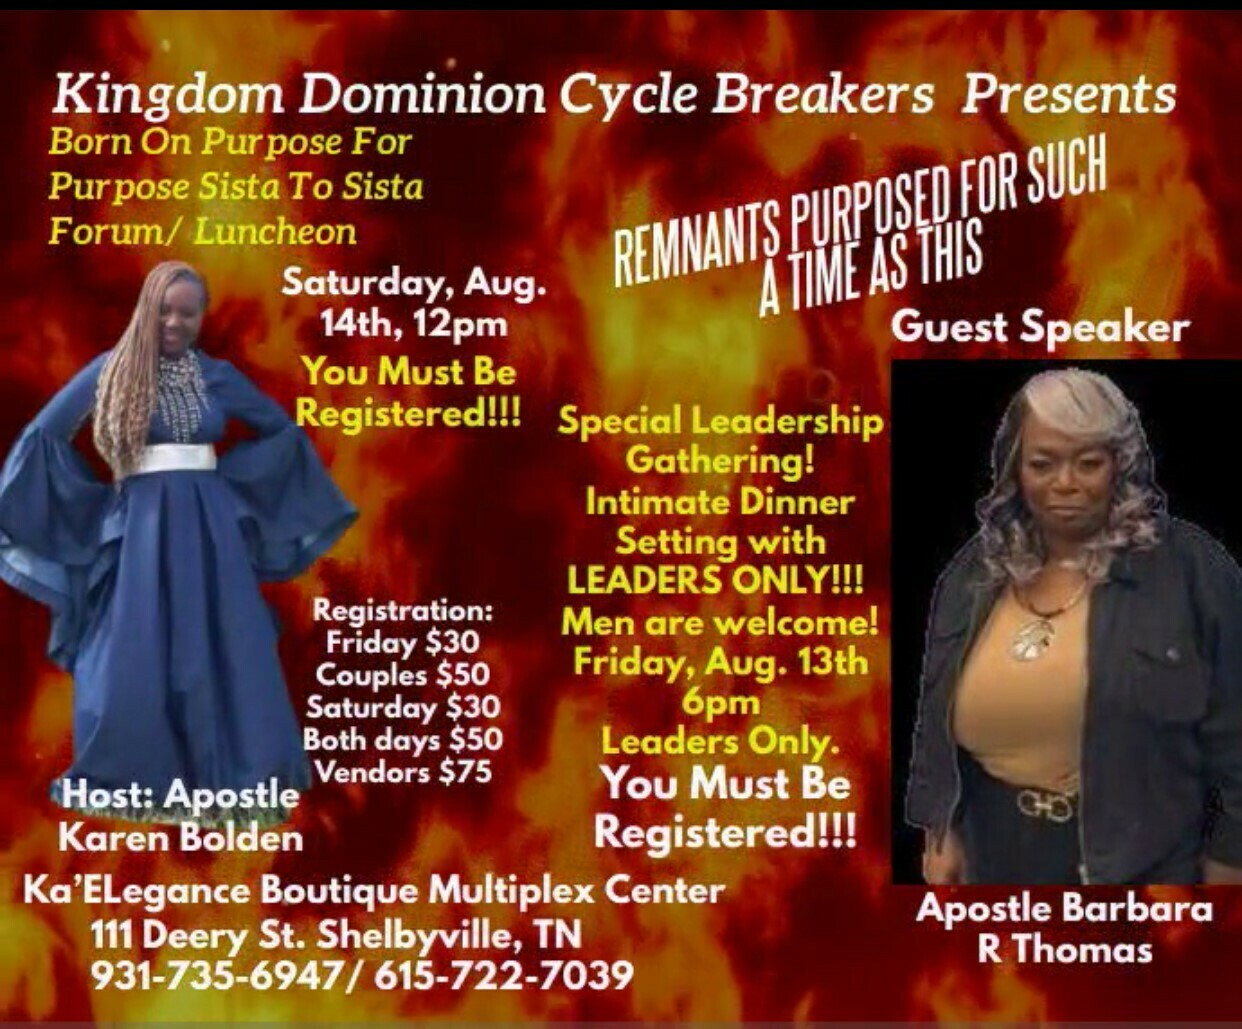 Born On Purpose For Purpose Leadership Gathering Dinner/ Sista To Sista Forum And Luncheon